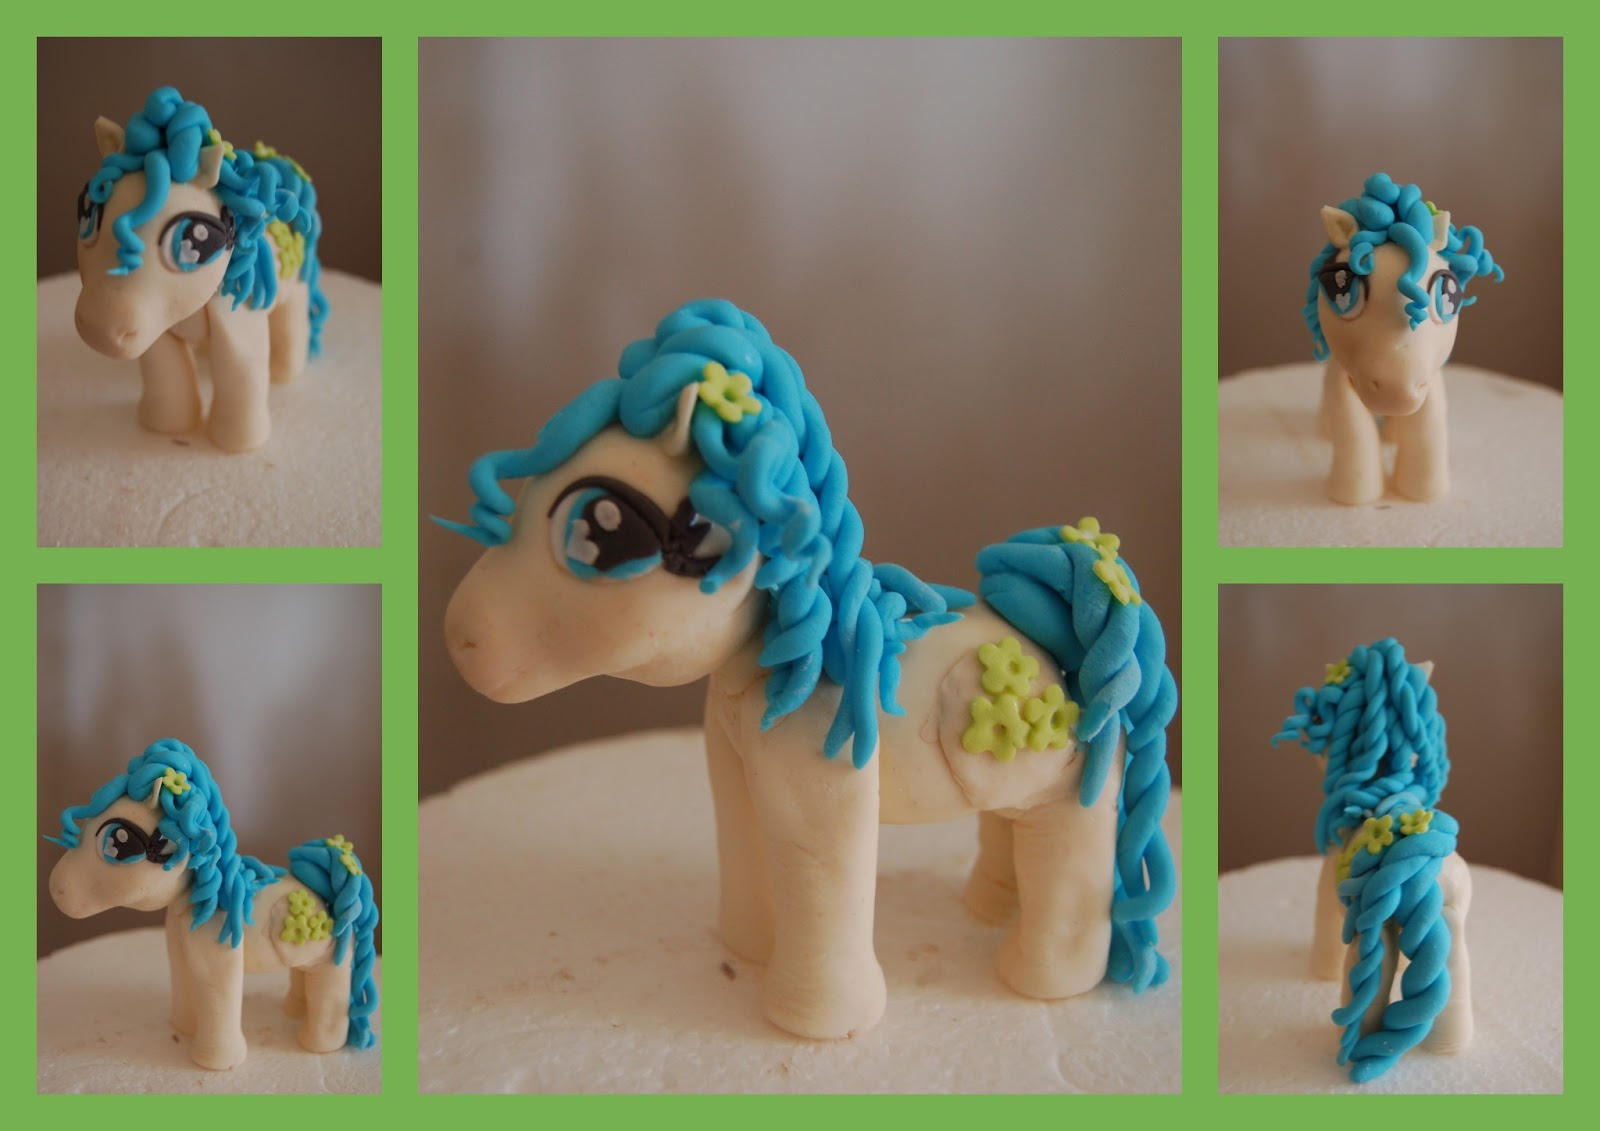 Wicked Creations: My Little Pony - Cake Topper